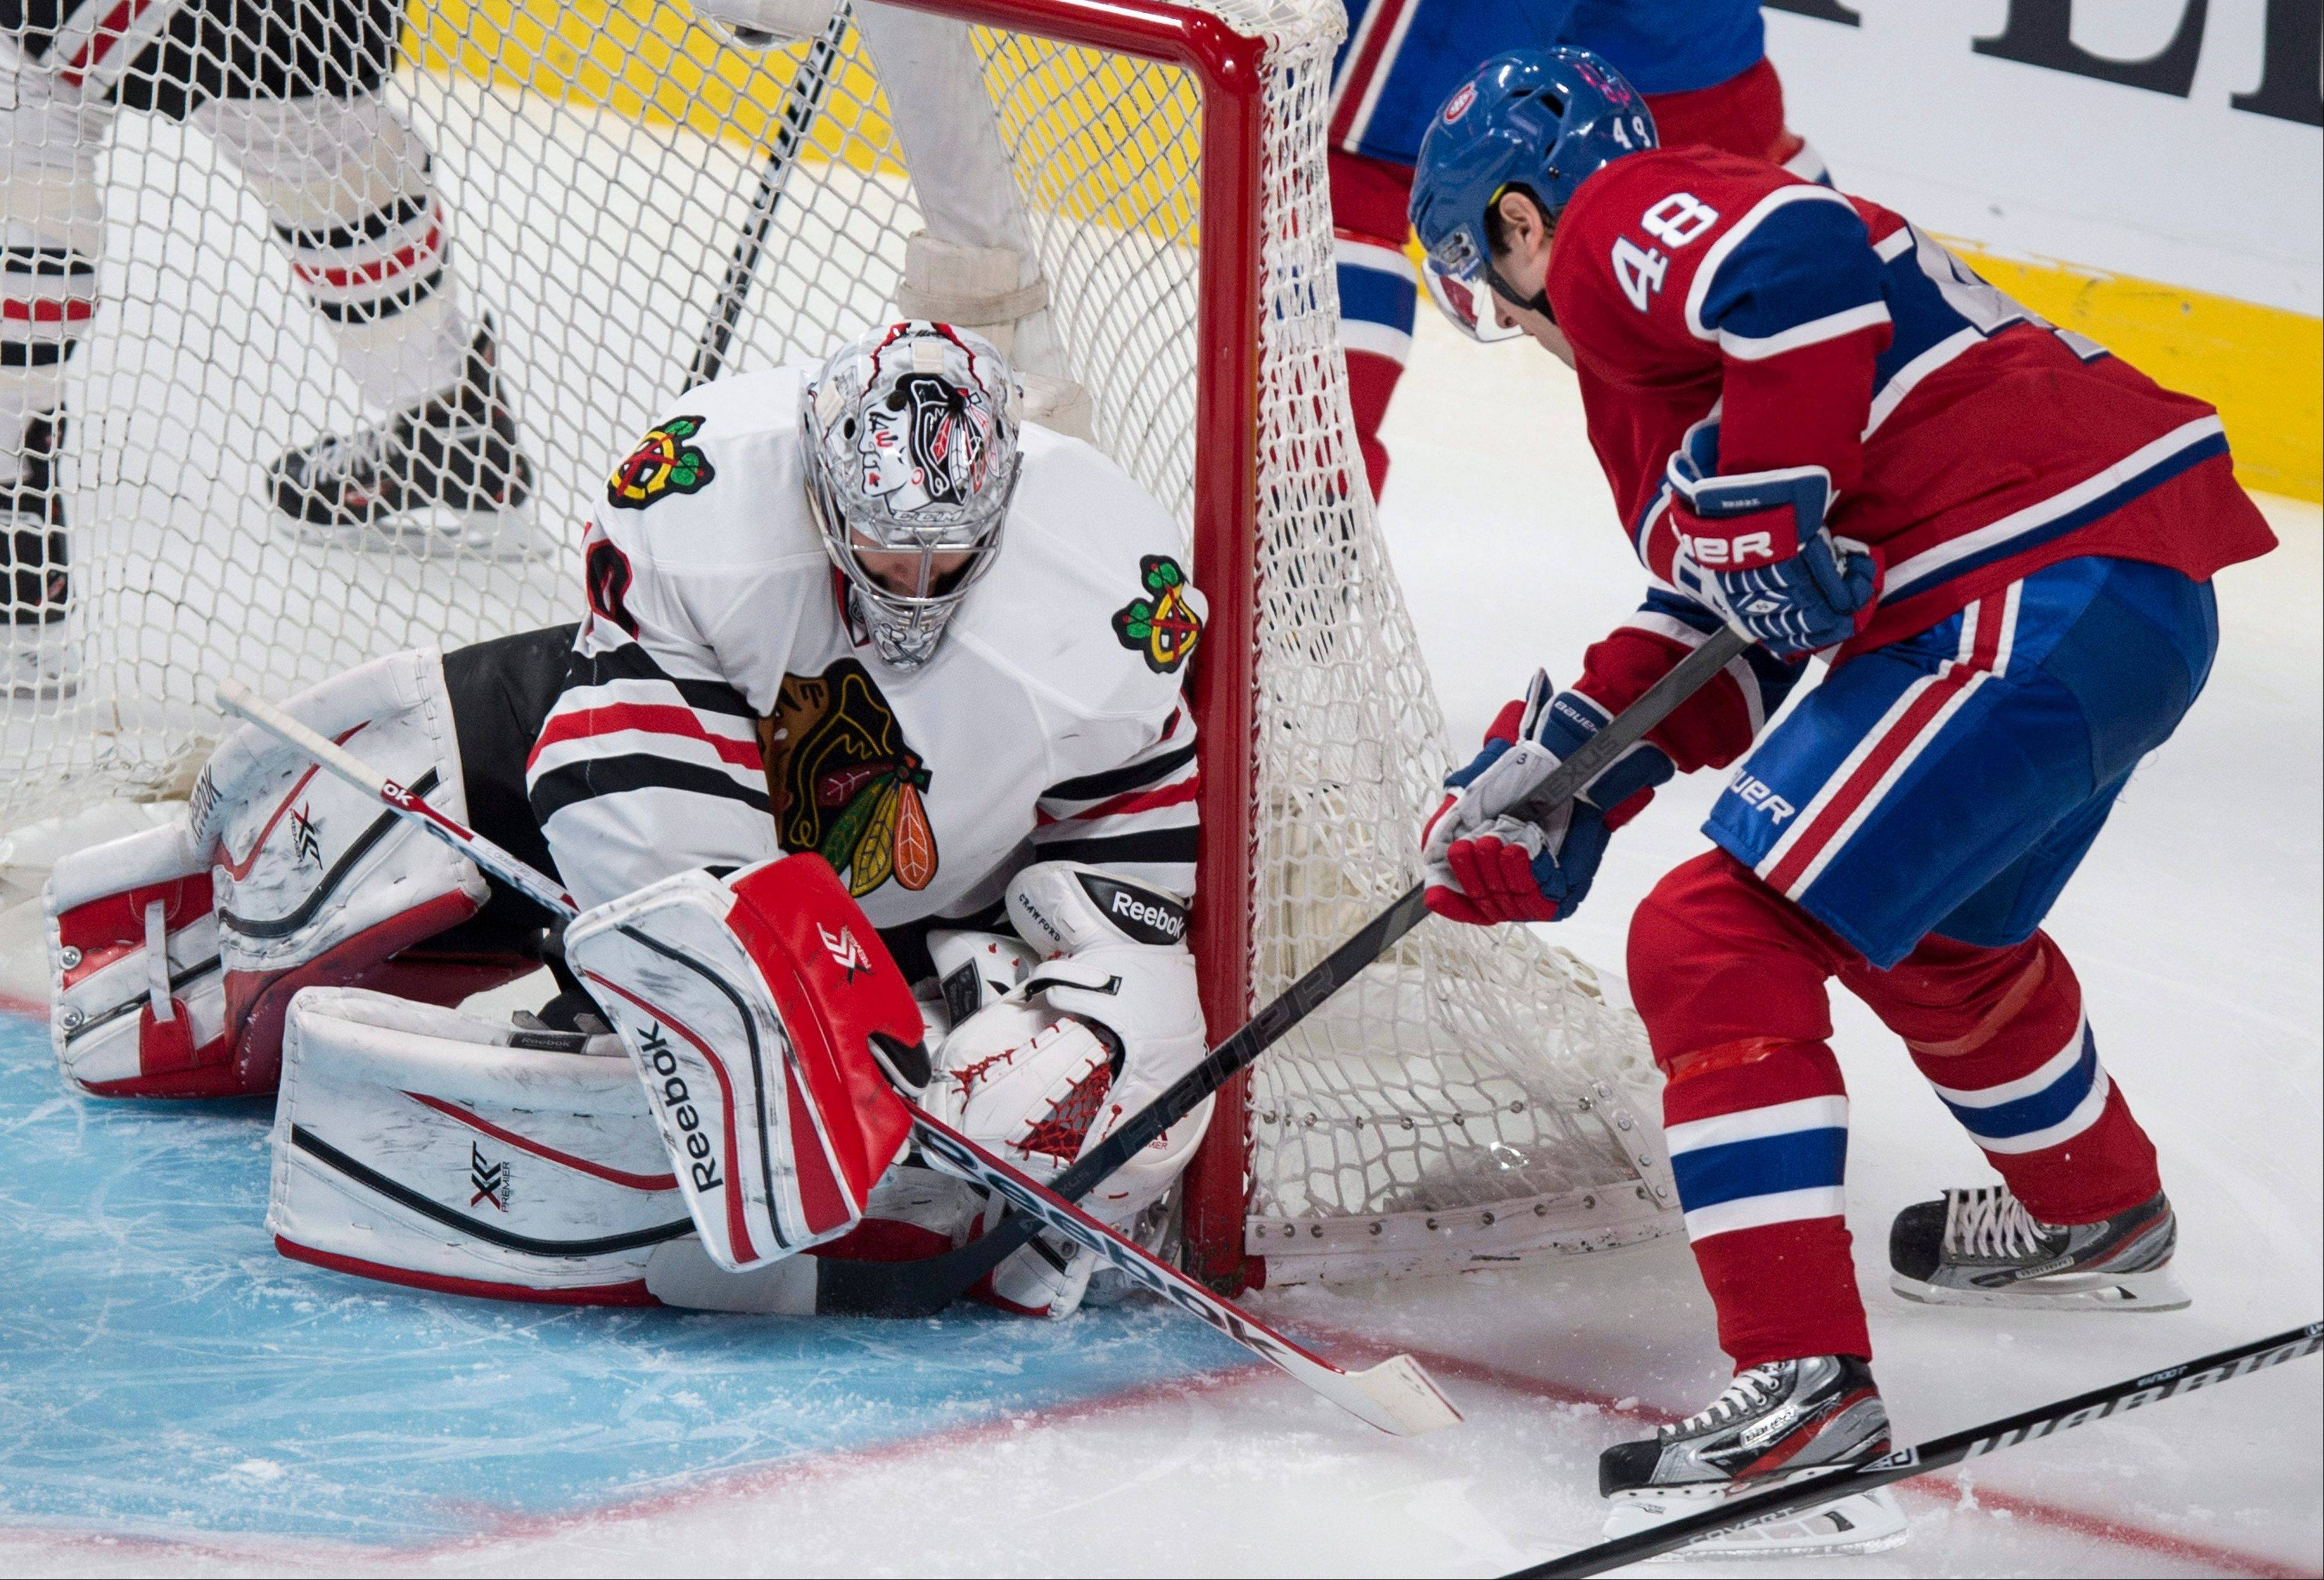 Chicago Blackhawks goalie Corey Crawford stops Montreal Canadiens� Daniel Briere during the second period Saturday in Montreal. The Blackhawks lost 2-1 in overtime.